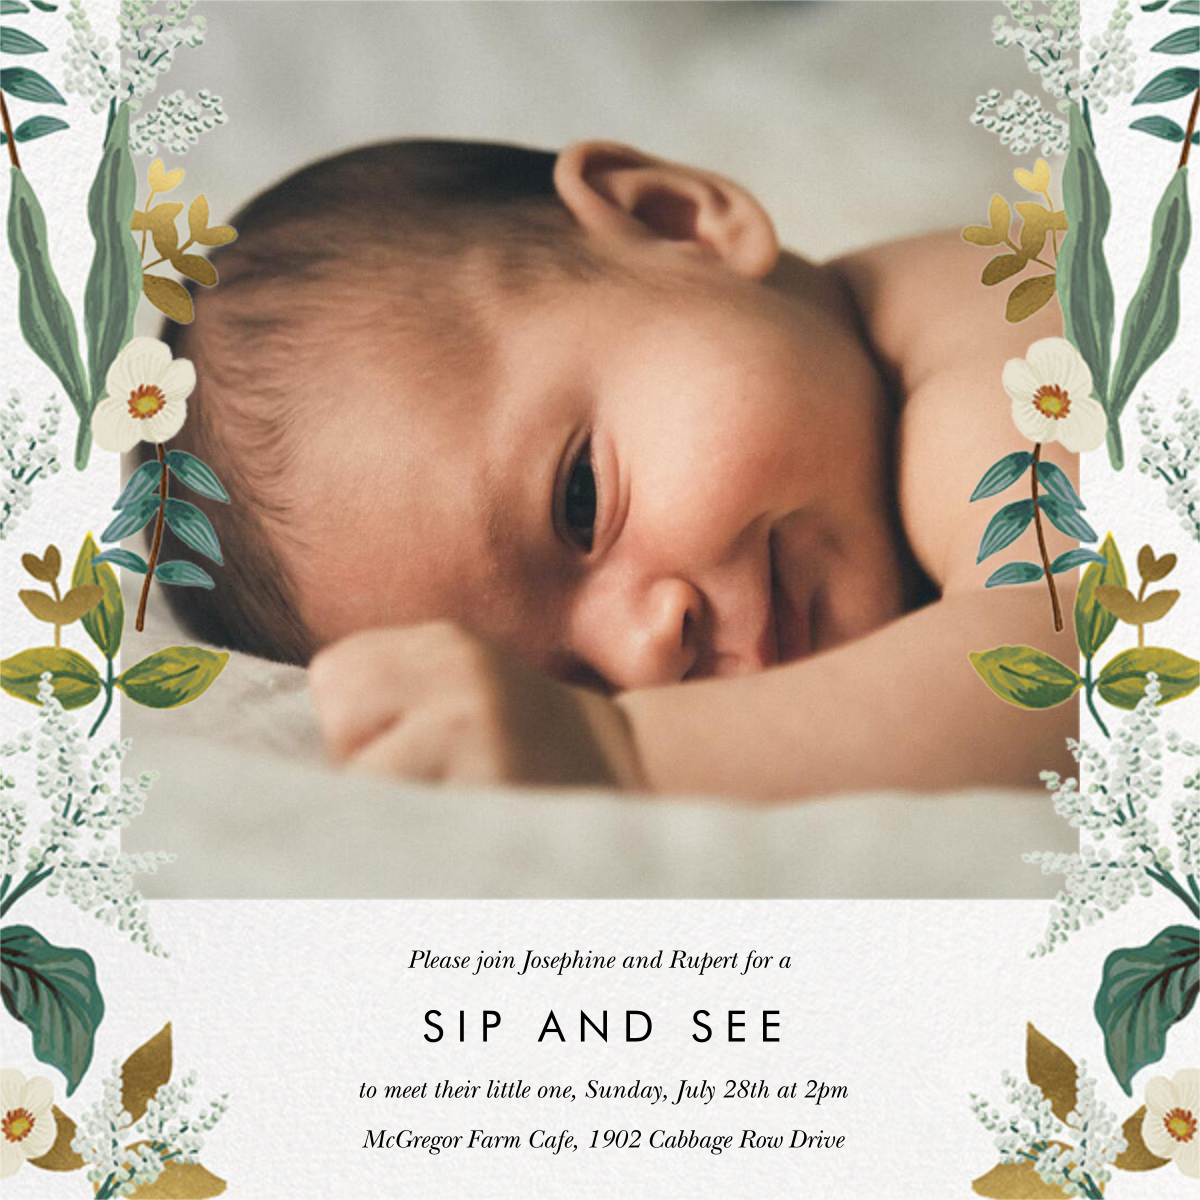 Meadow Garland Photo - Rifle Paper Co. - Sip and see